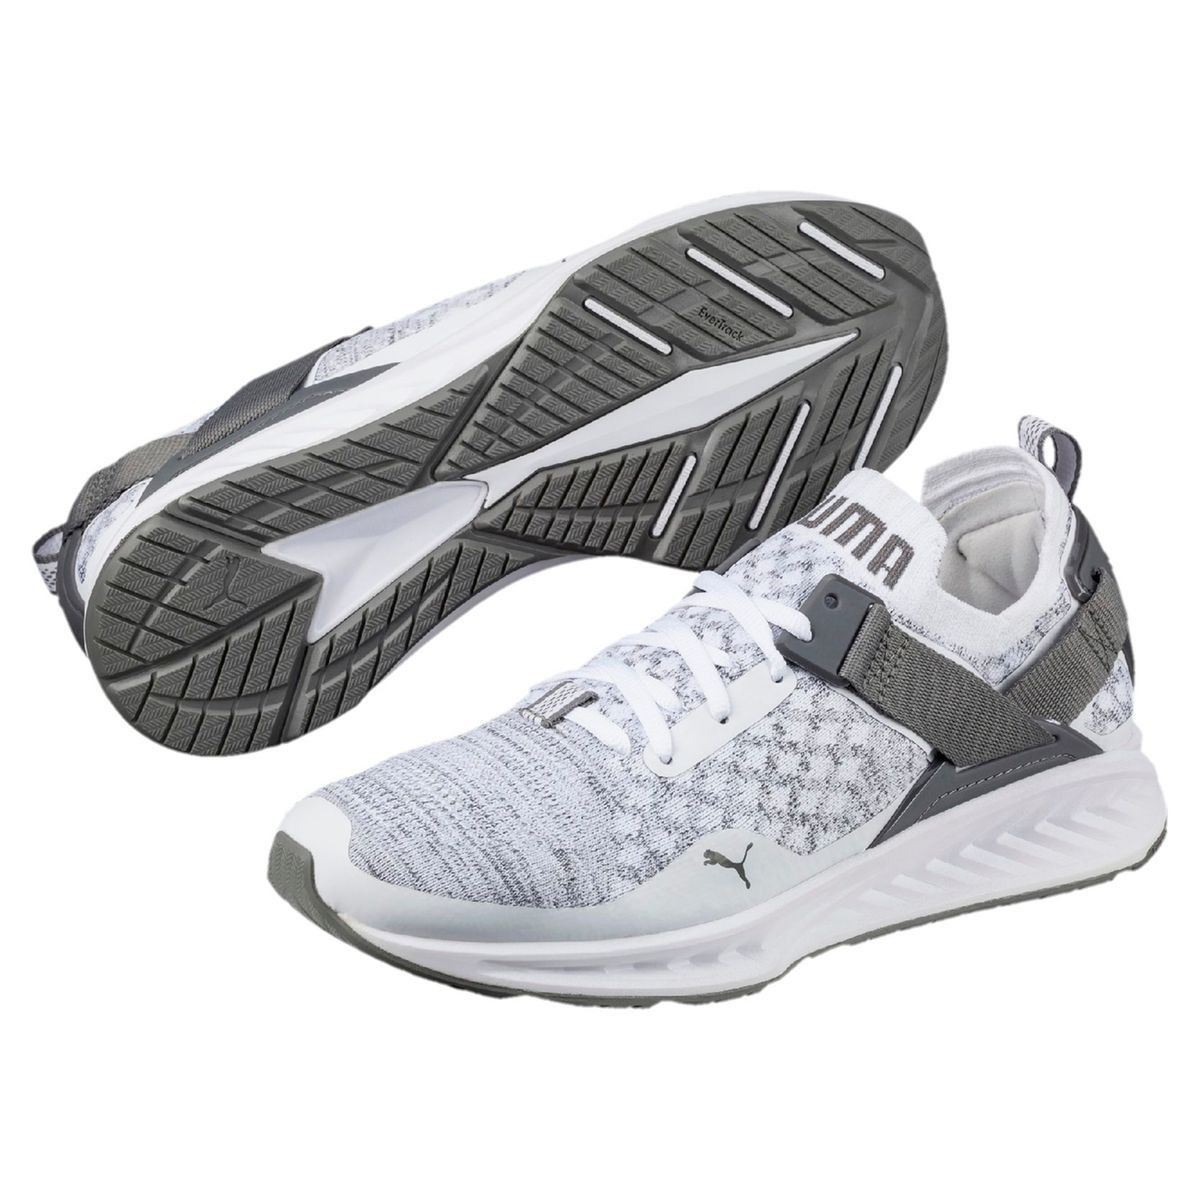 Chaussures Ignite Evoknit Low Taille : 42;41;43;44;44 12